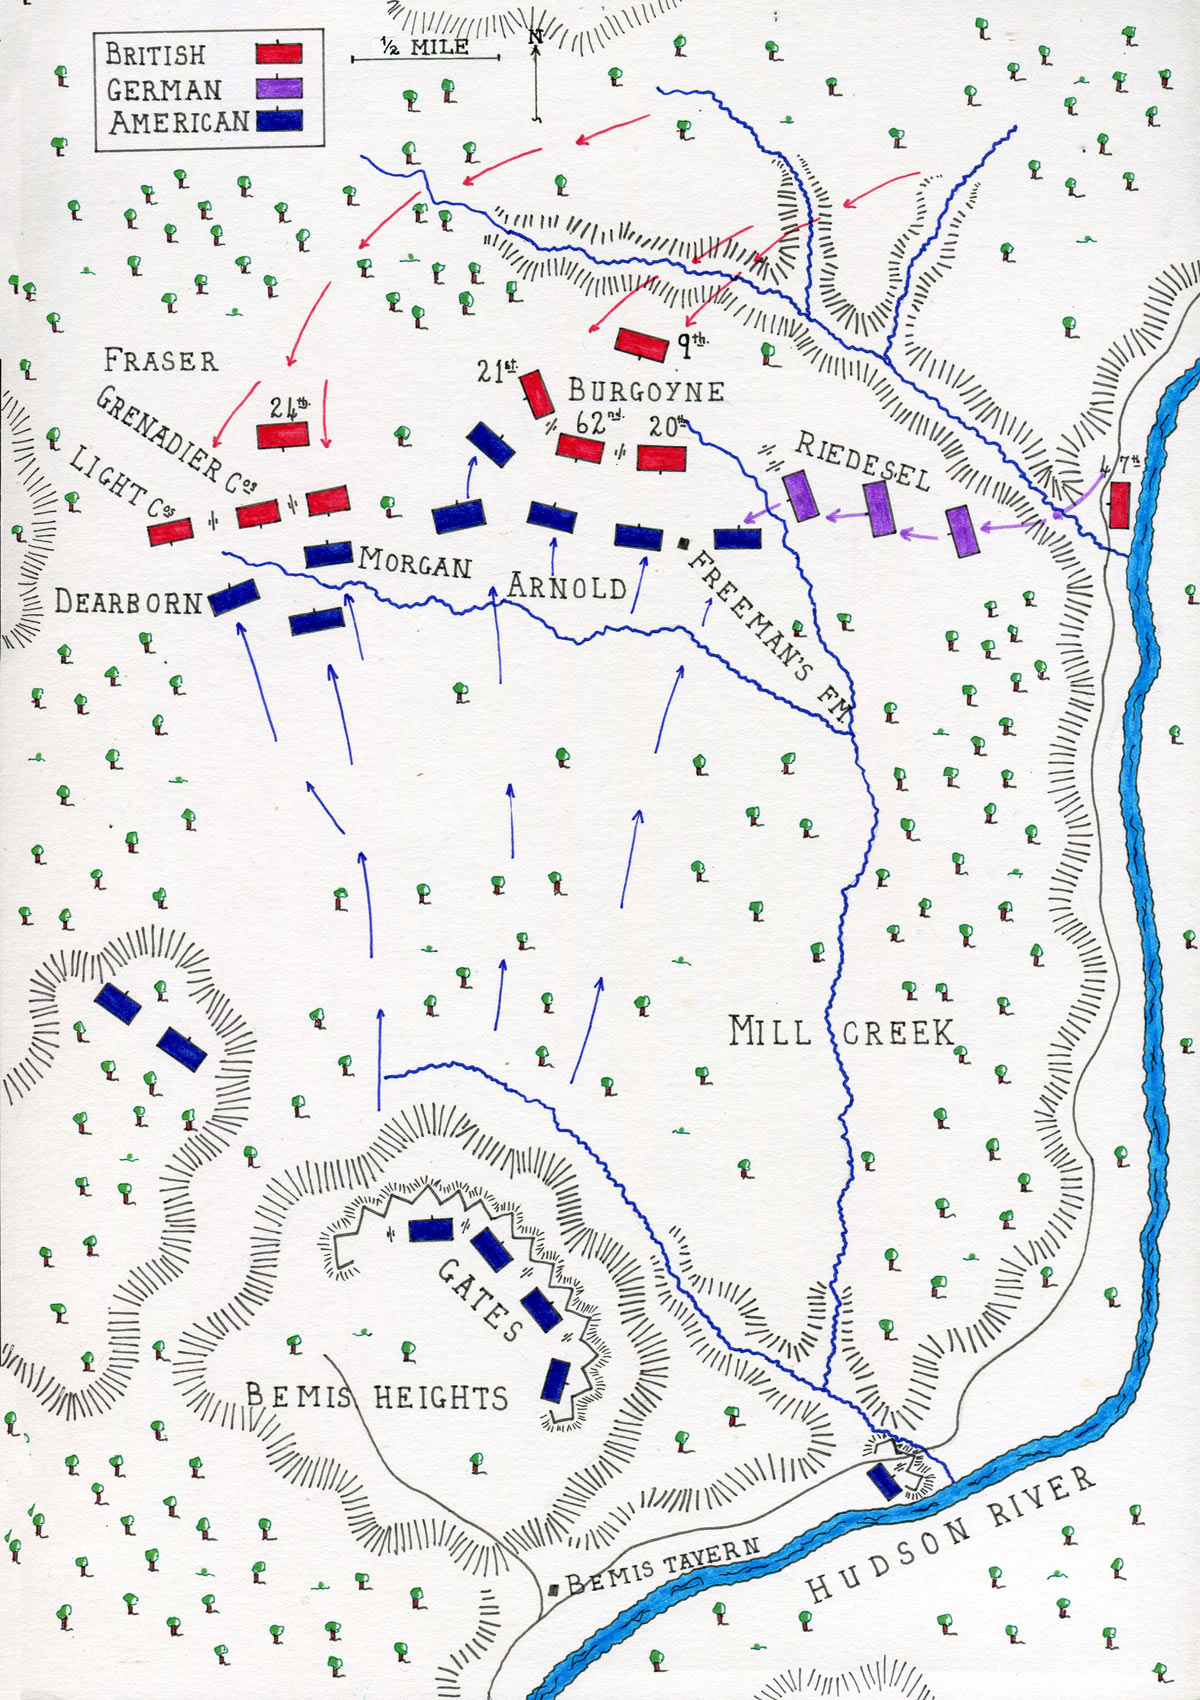 Map of the Battle of Freeman's Farm on 19th September 1777 in the American Revolutionary War: map by John Fawkes